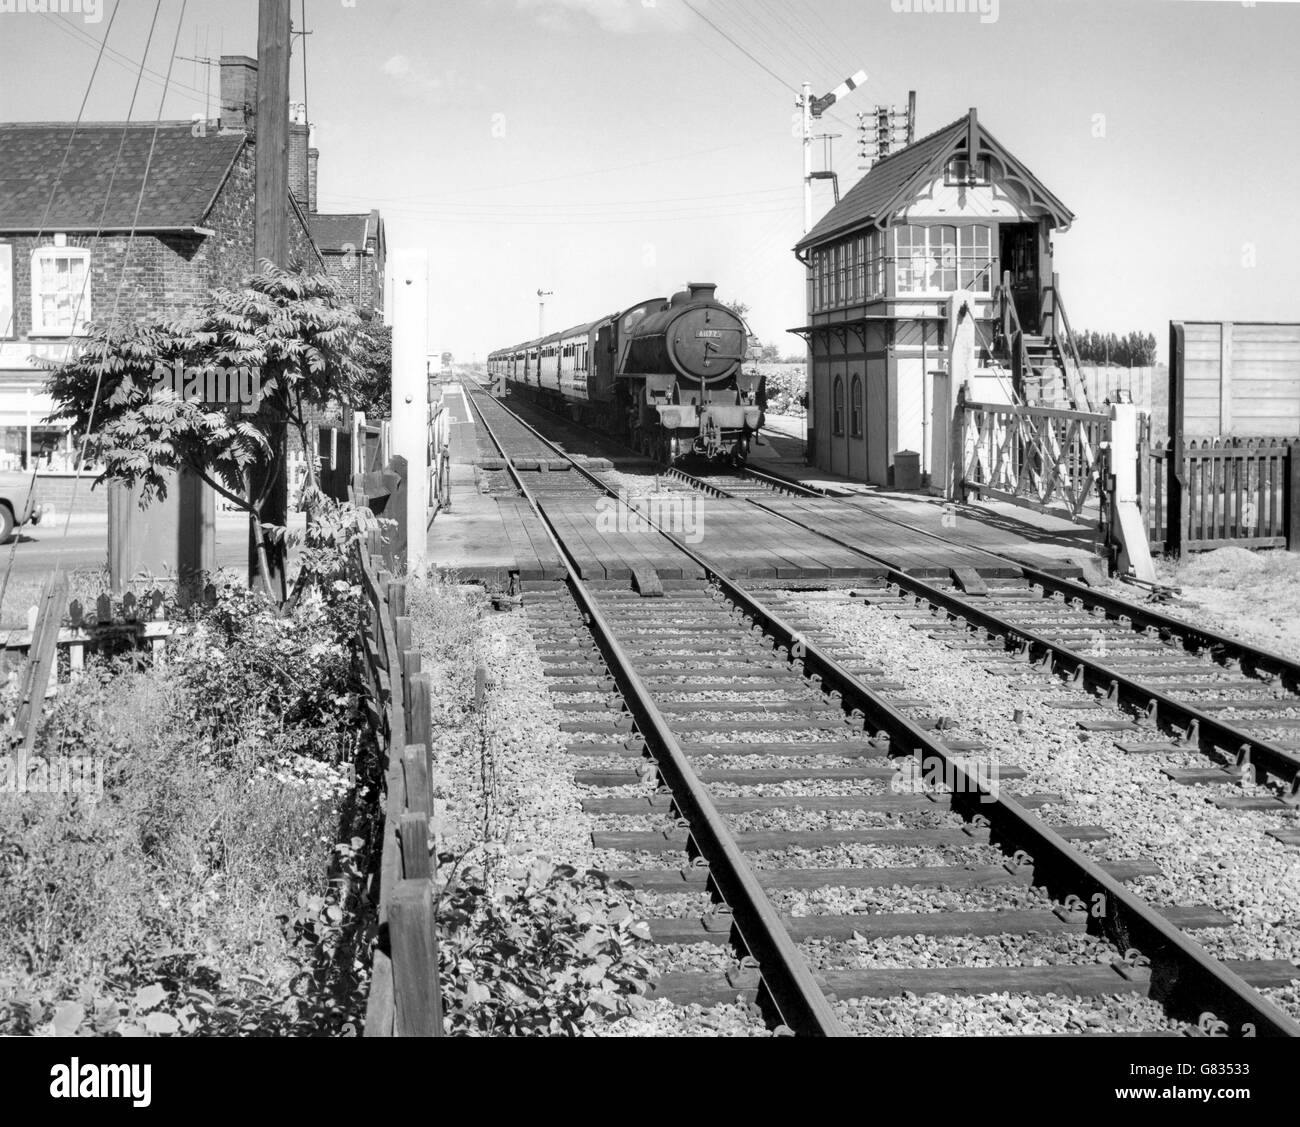 Thompson Class B1 at the head of a passenger train passes a signal box and level crossing at an unknown location - Stock Image